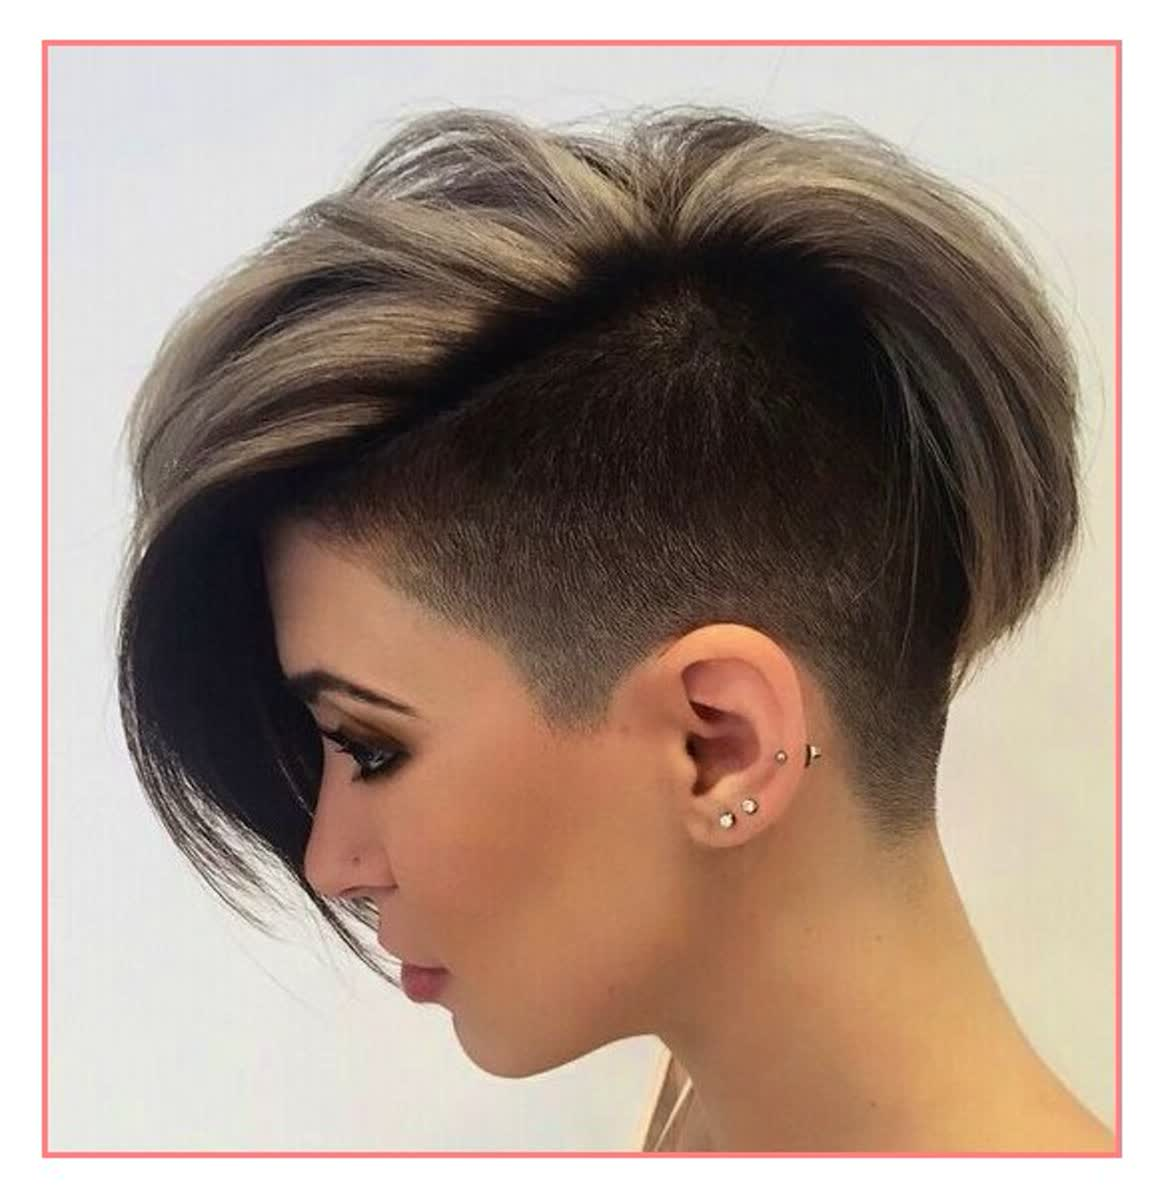 AMAZING COLORFUL UNDER CUT HAIR STYLES FOR WOMEN 13